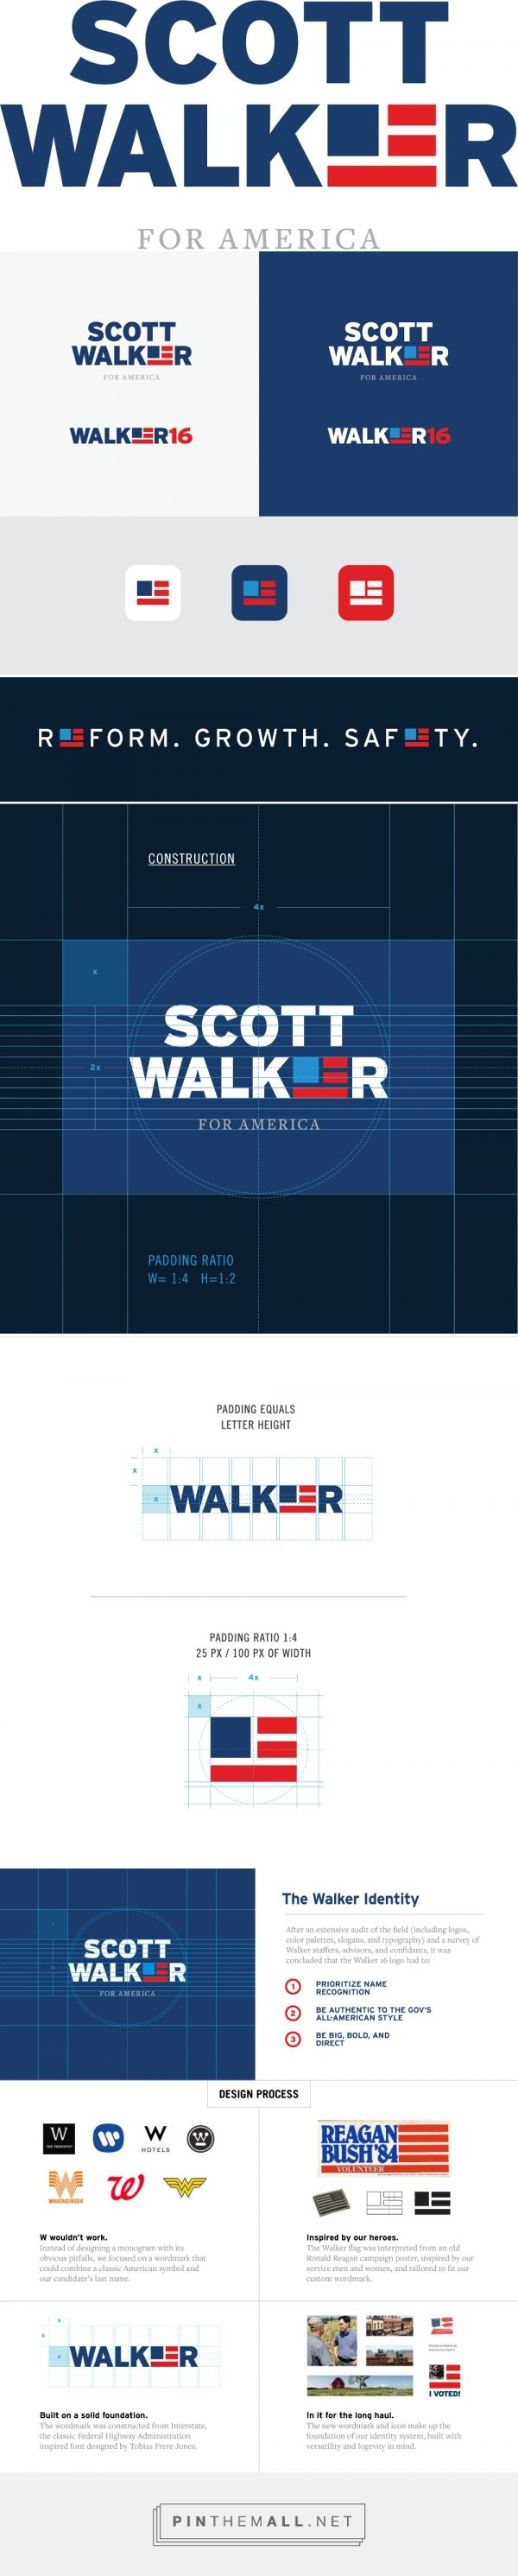 New Logo for Scott Walker done In-house - probably the best of the candidates logos that I've seen so far.